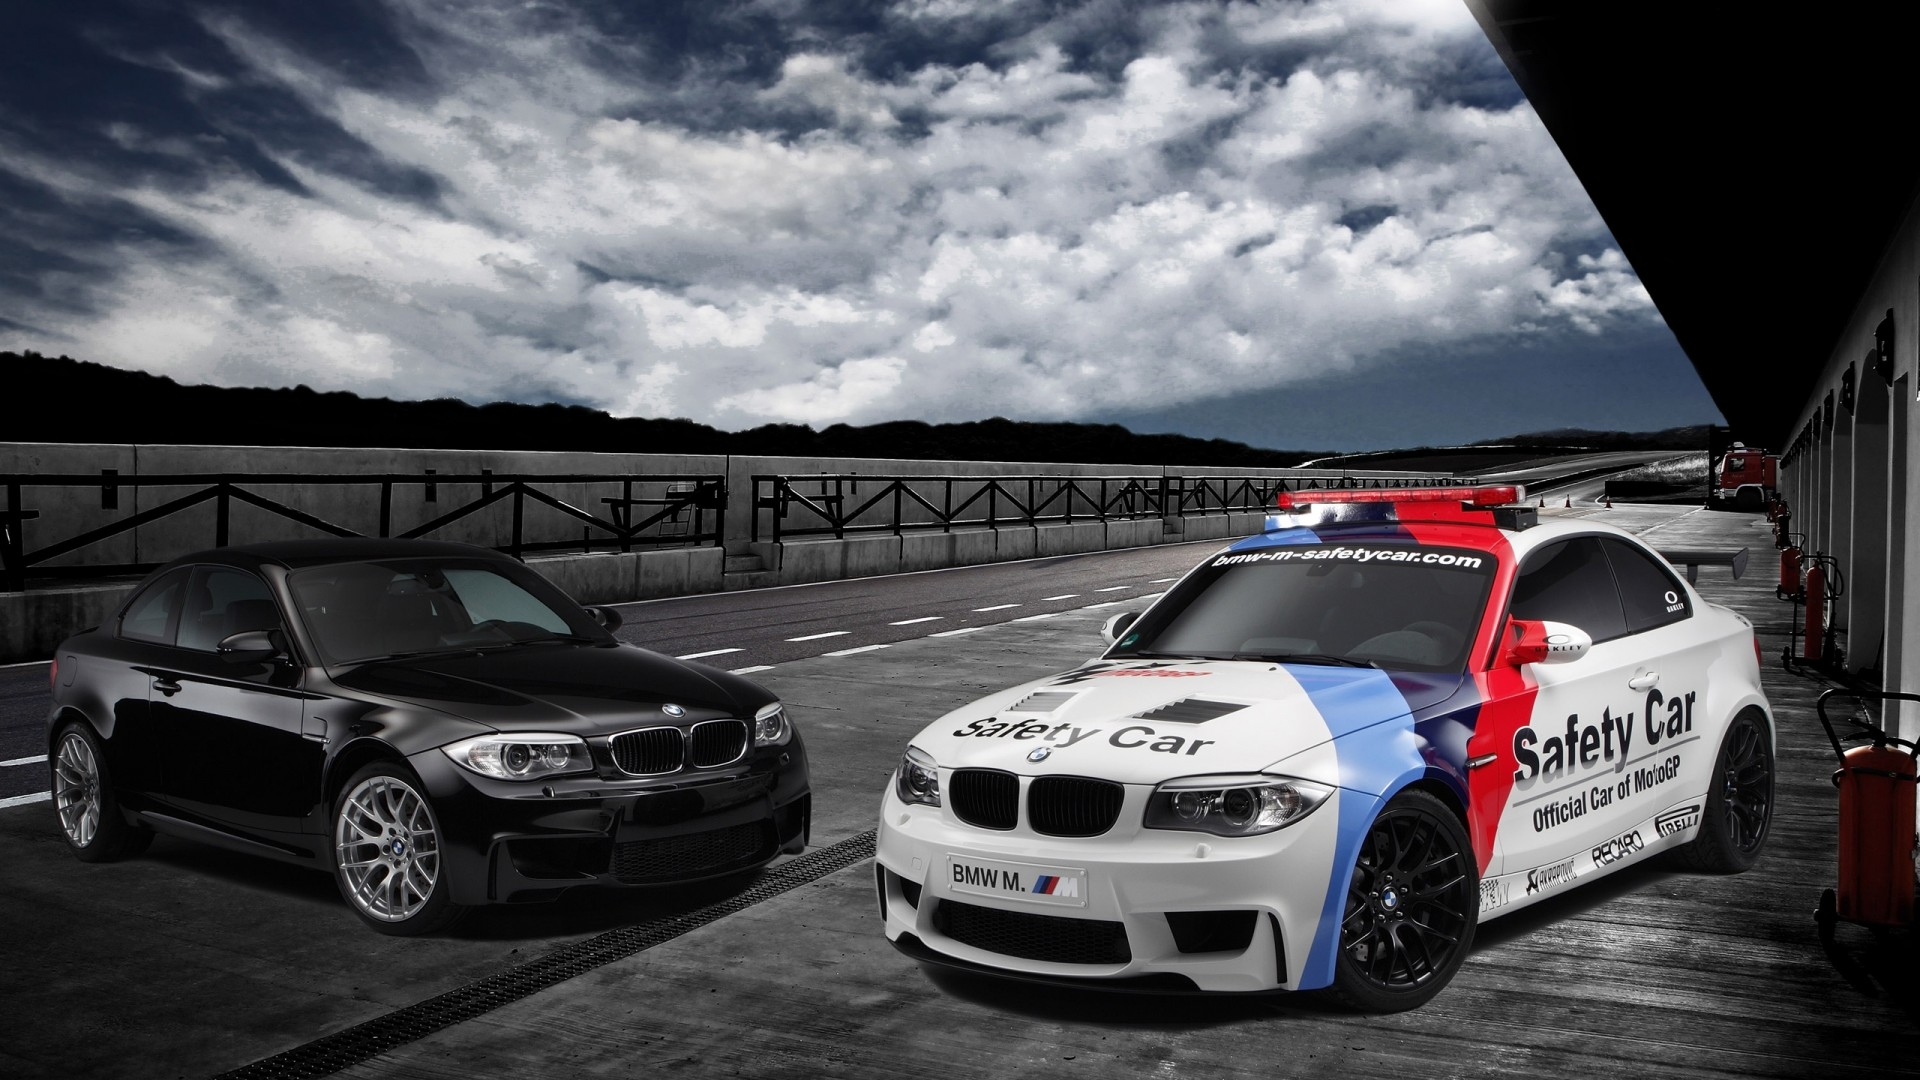 Res: 1920x1080, BMW 1 Series M Coupe Wallpapers